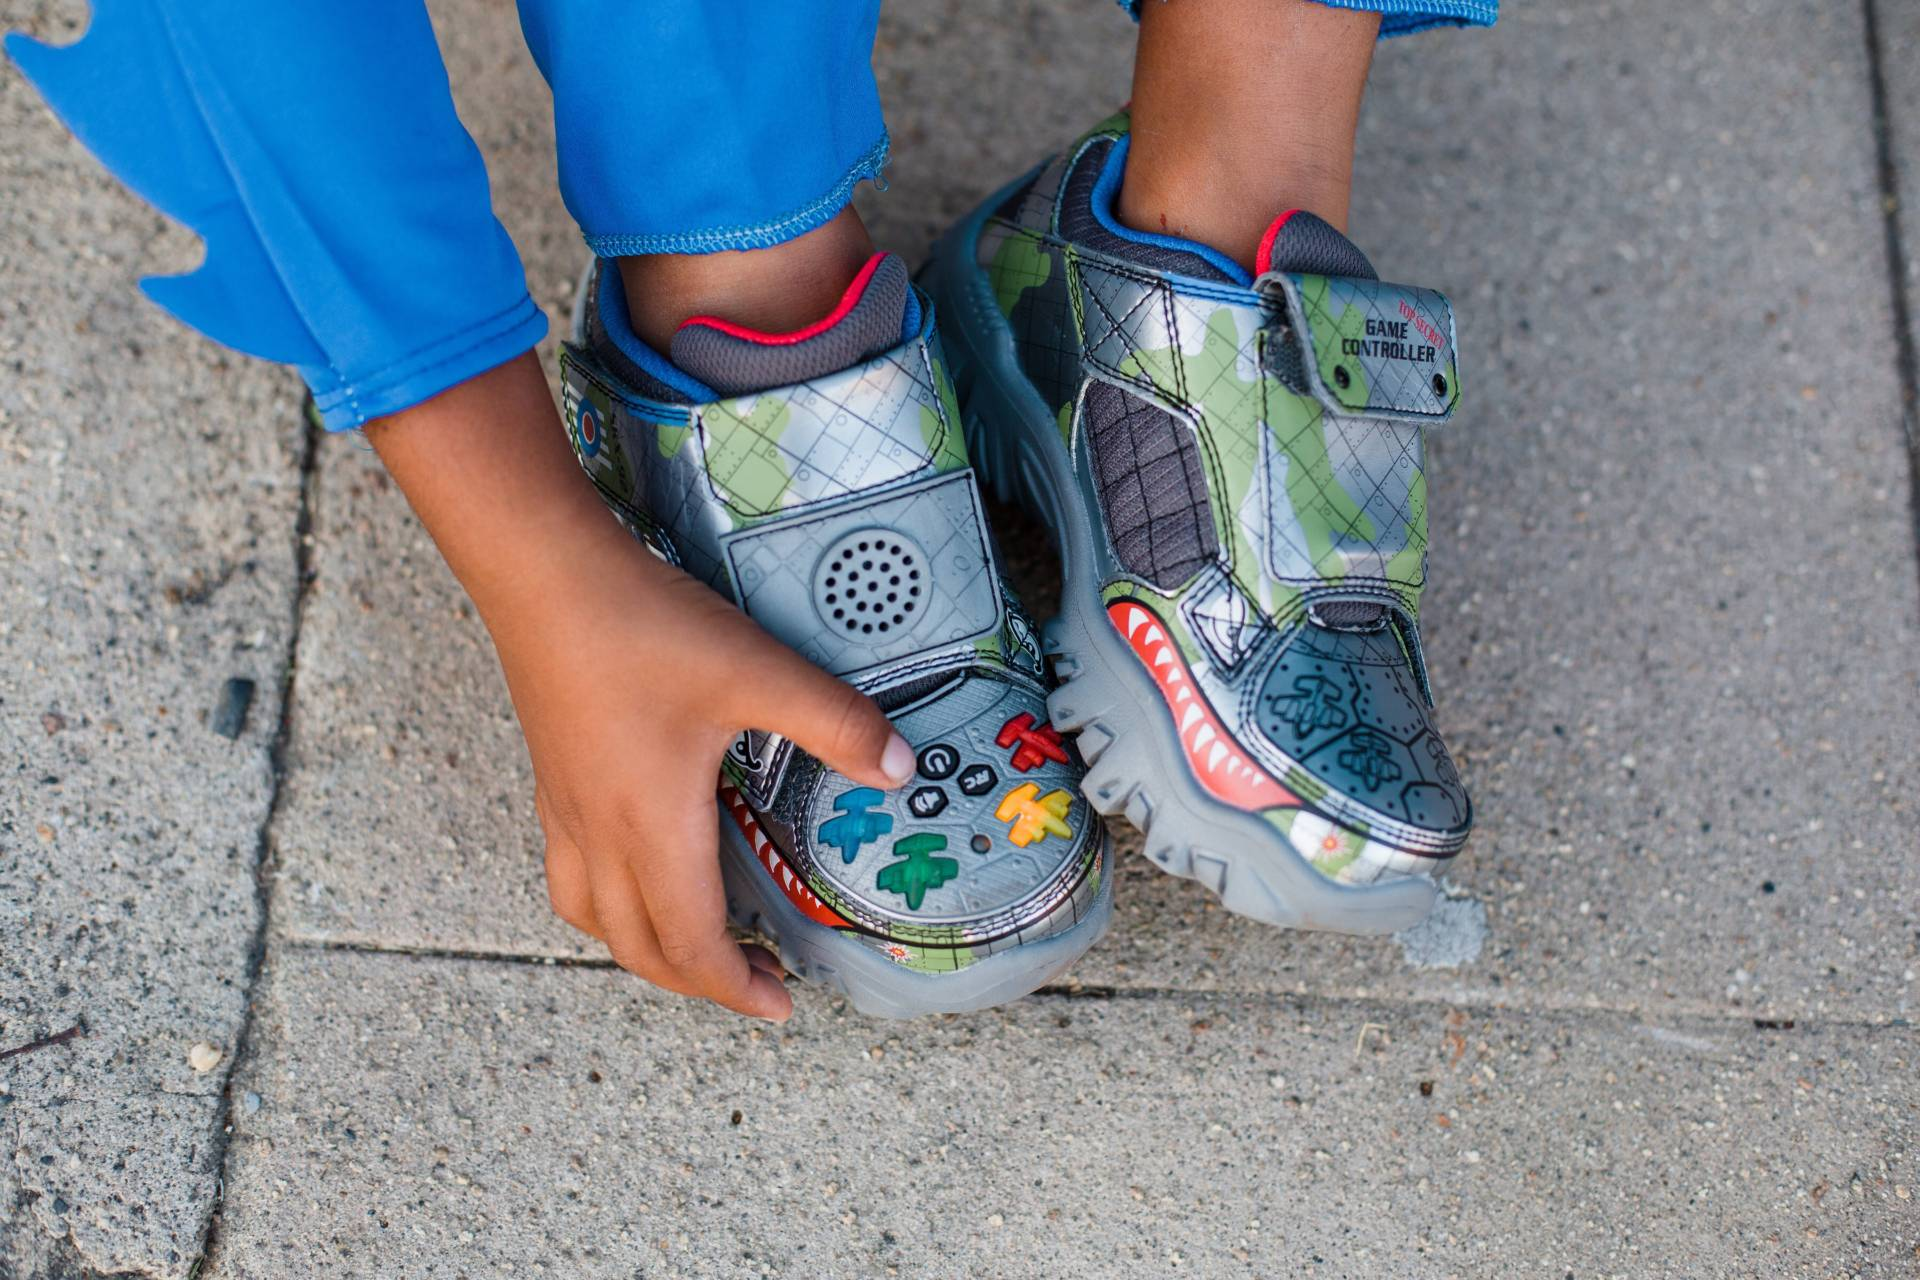 00eac1311 ... Skechers light up - Ruthie Ridley Blog ...